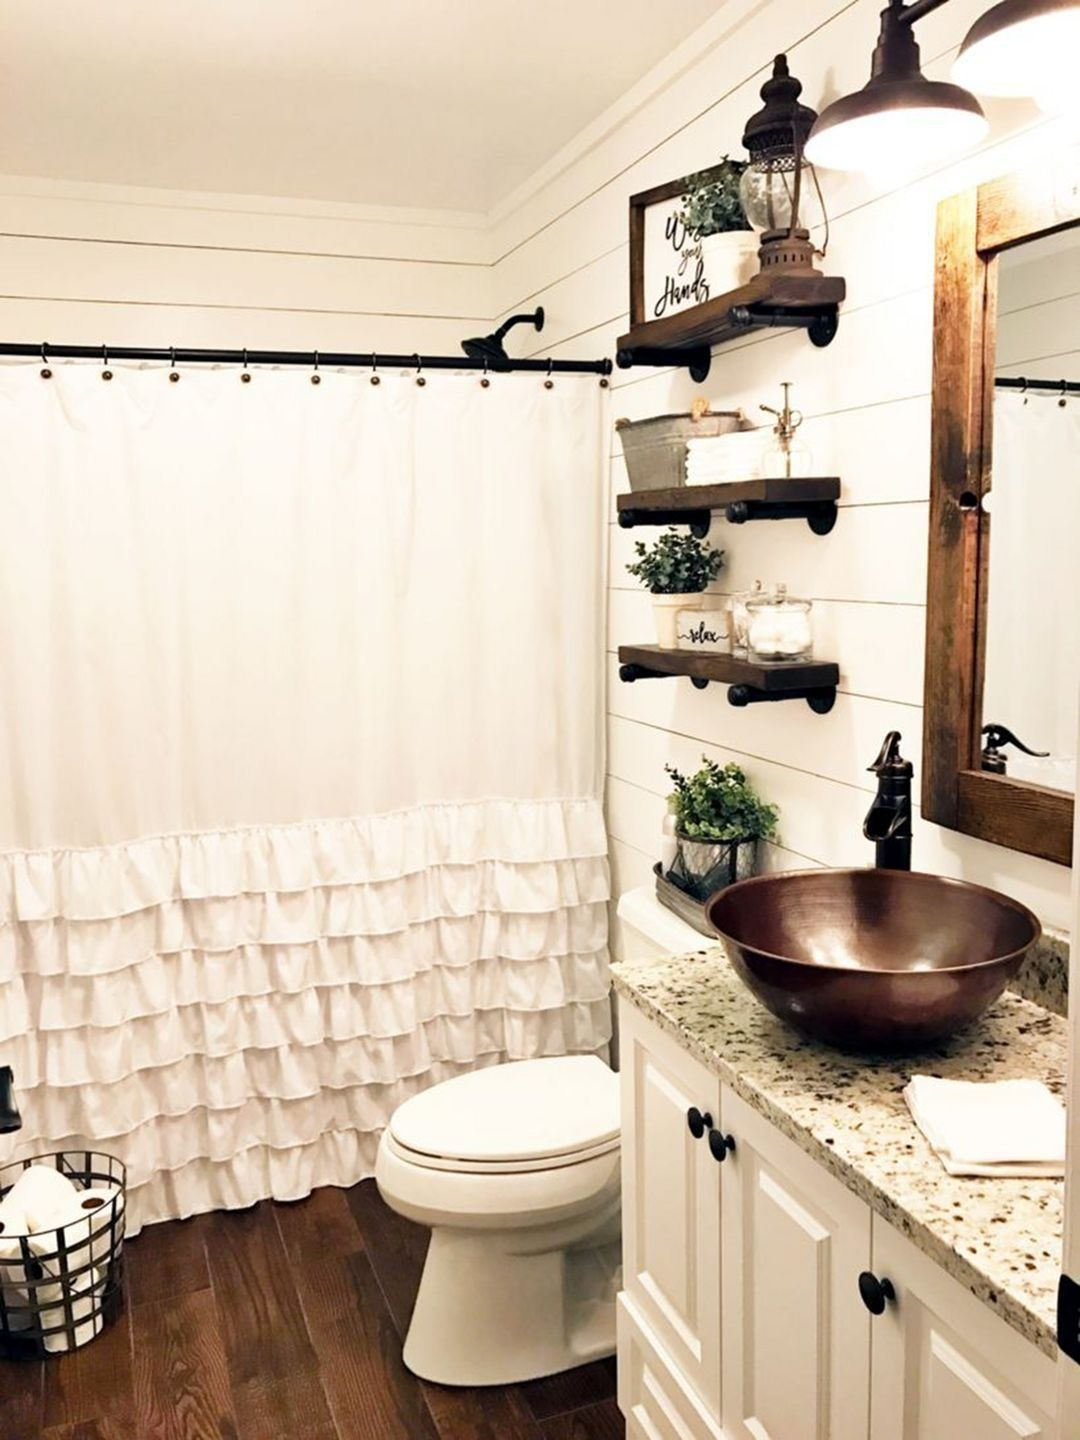 25 Cozy Rustic Bathroom Decor To Guide Your Renovation - W20